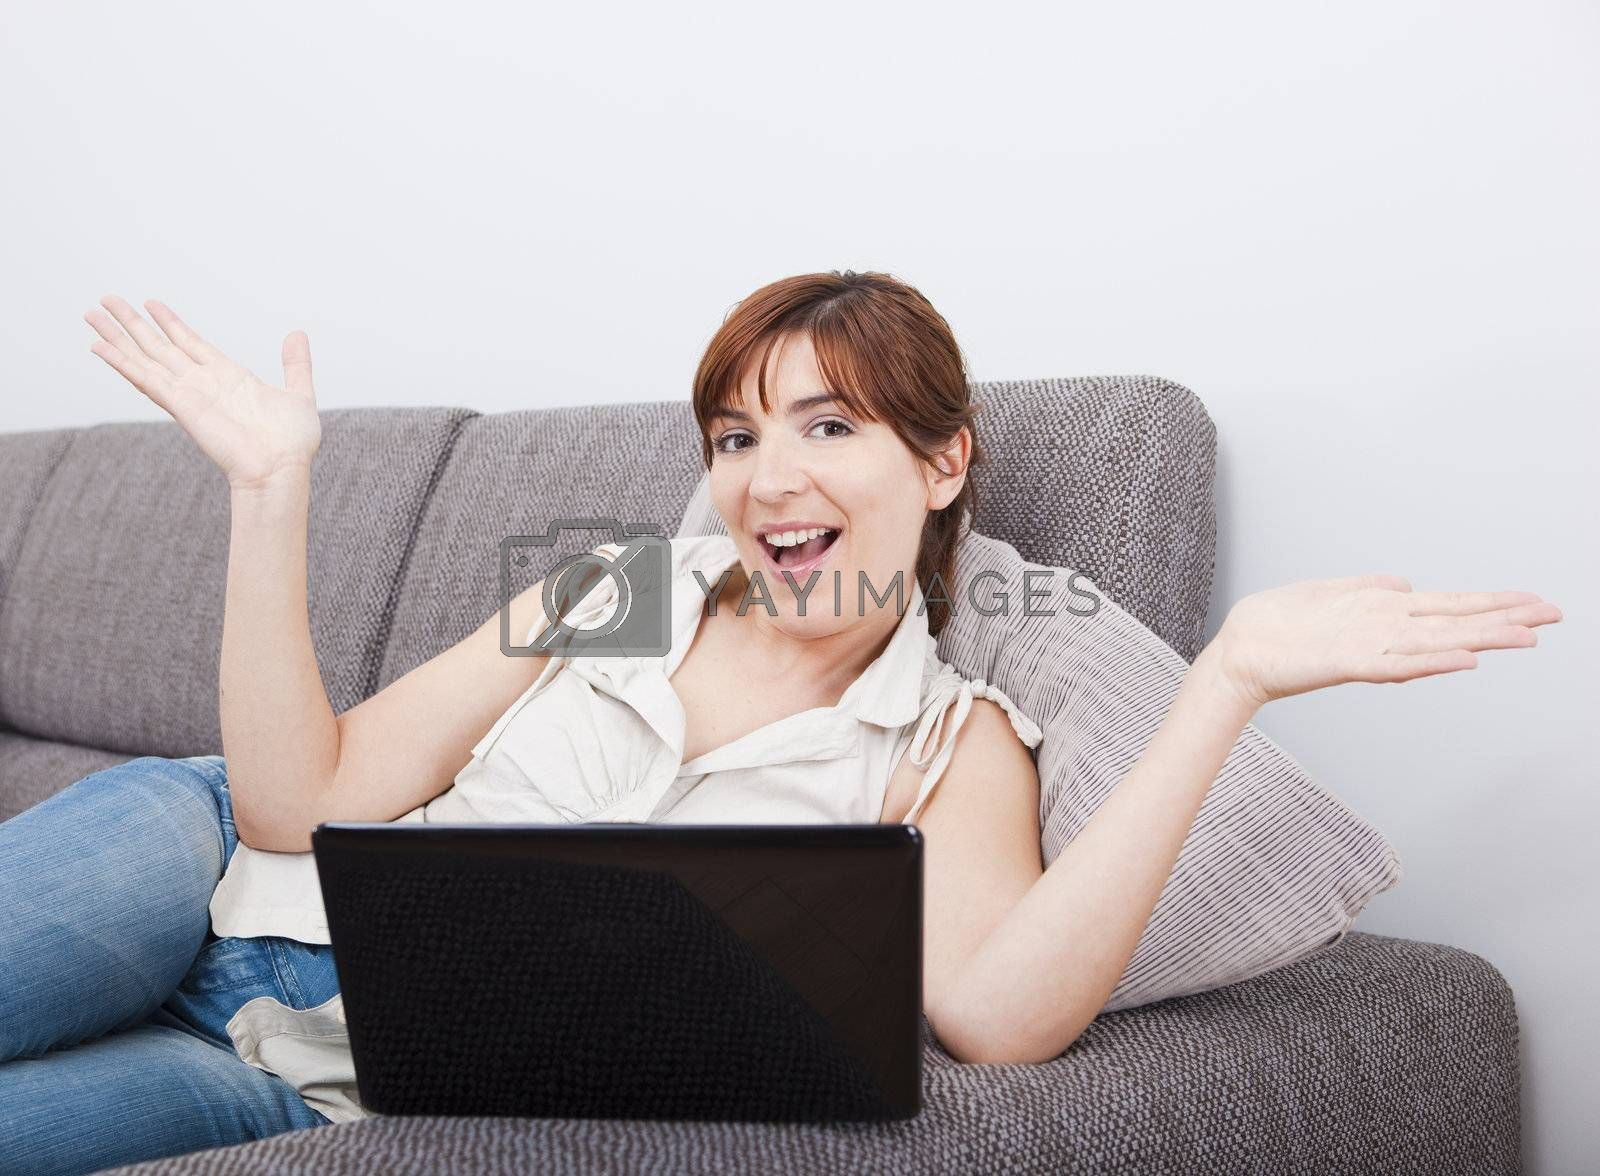 Royalty free image of Working with a laptop by Iko